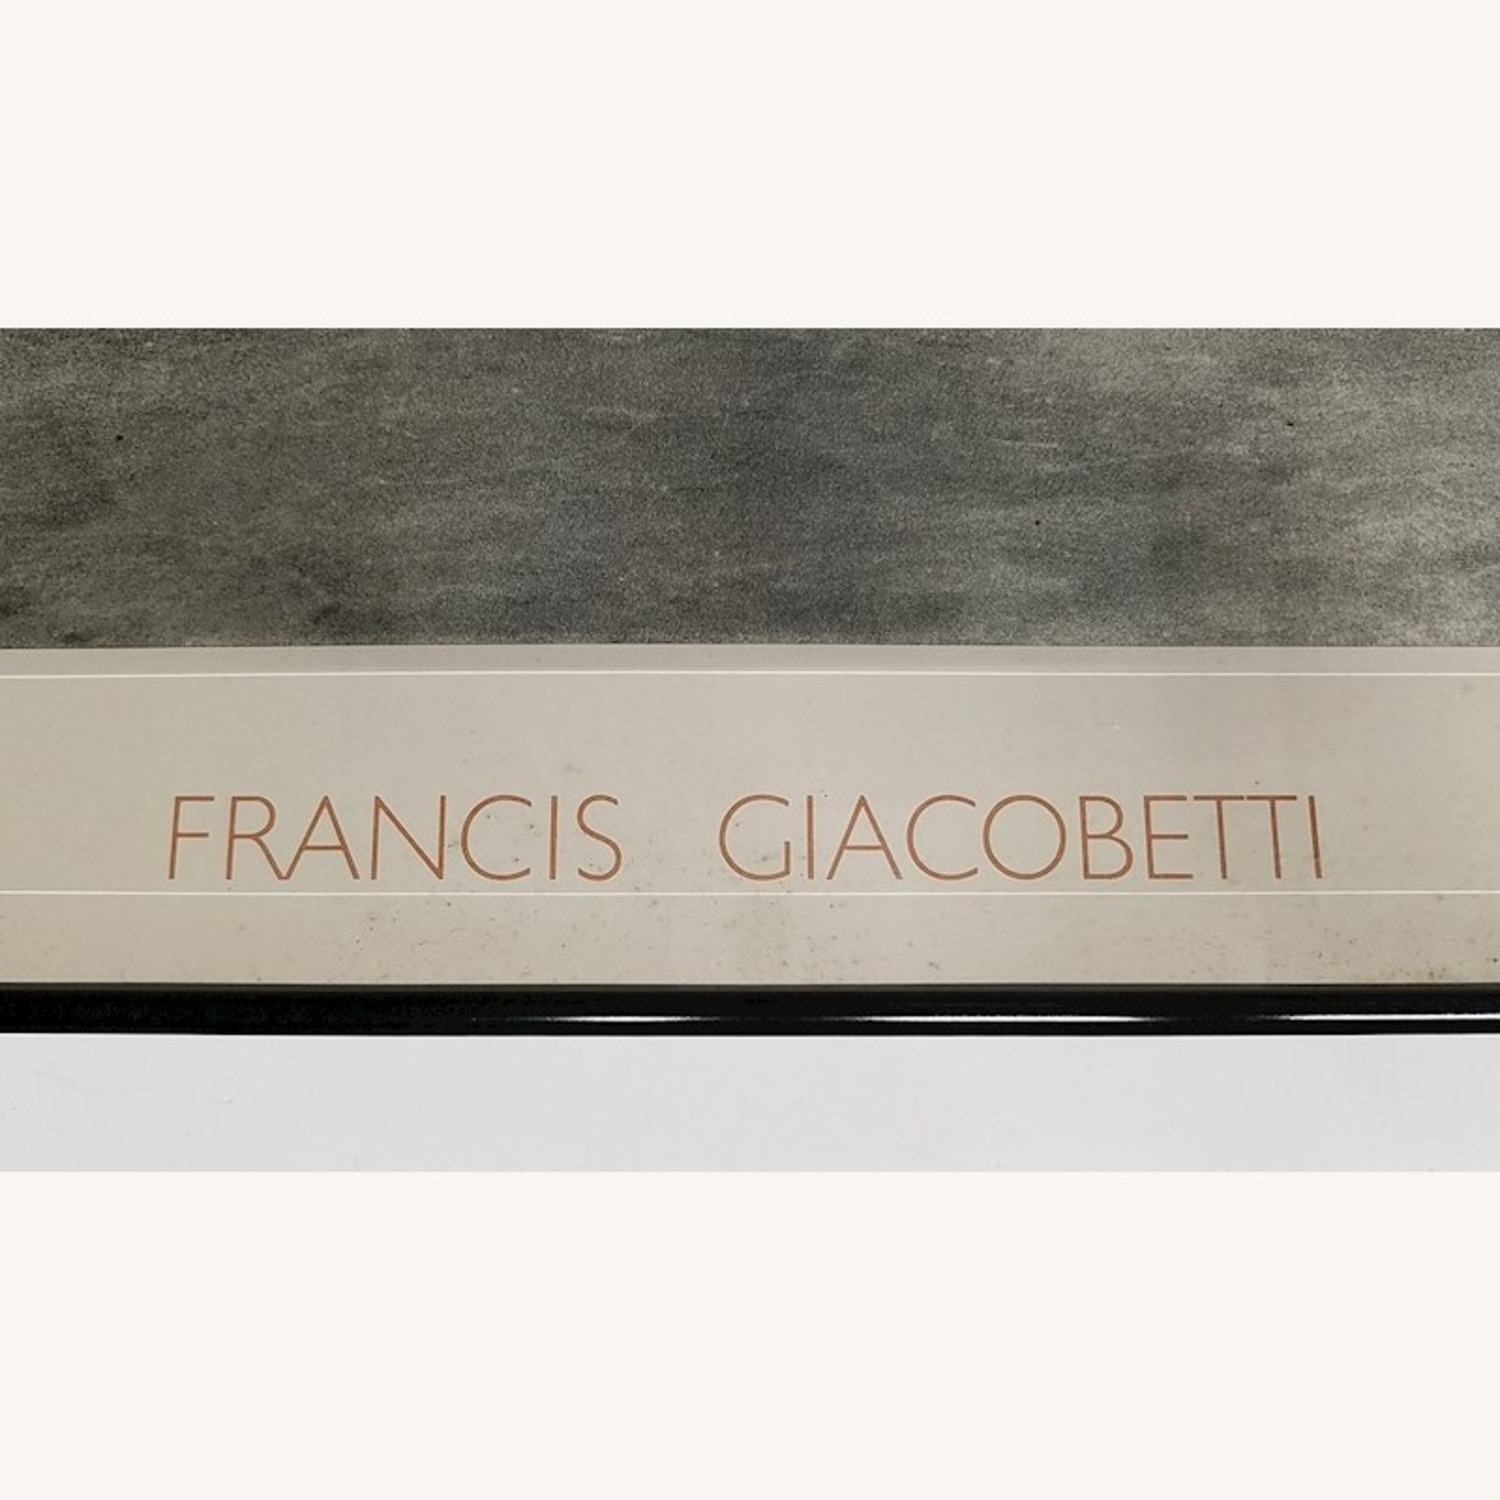 SIGNED Francis Giacobetti Photography Print, Frame - image-5